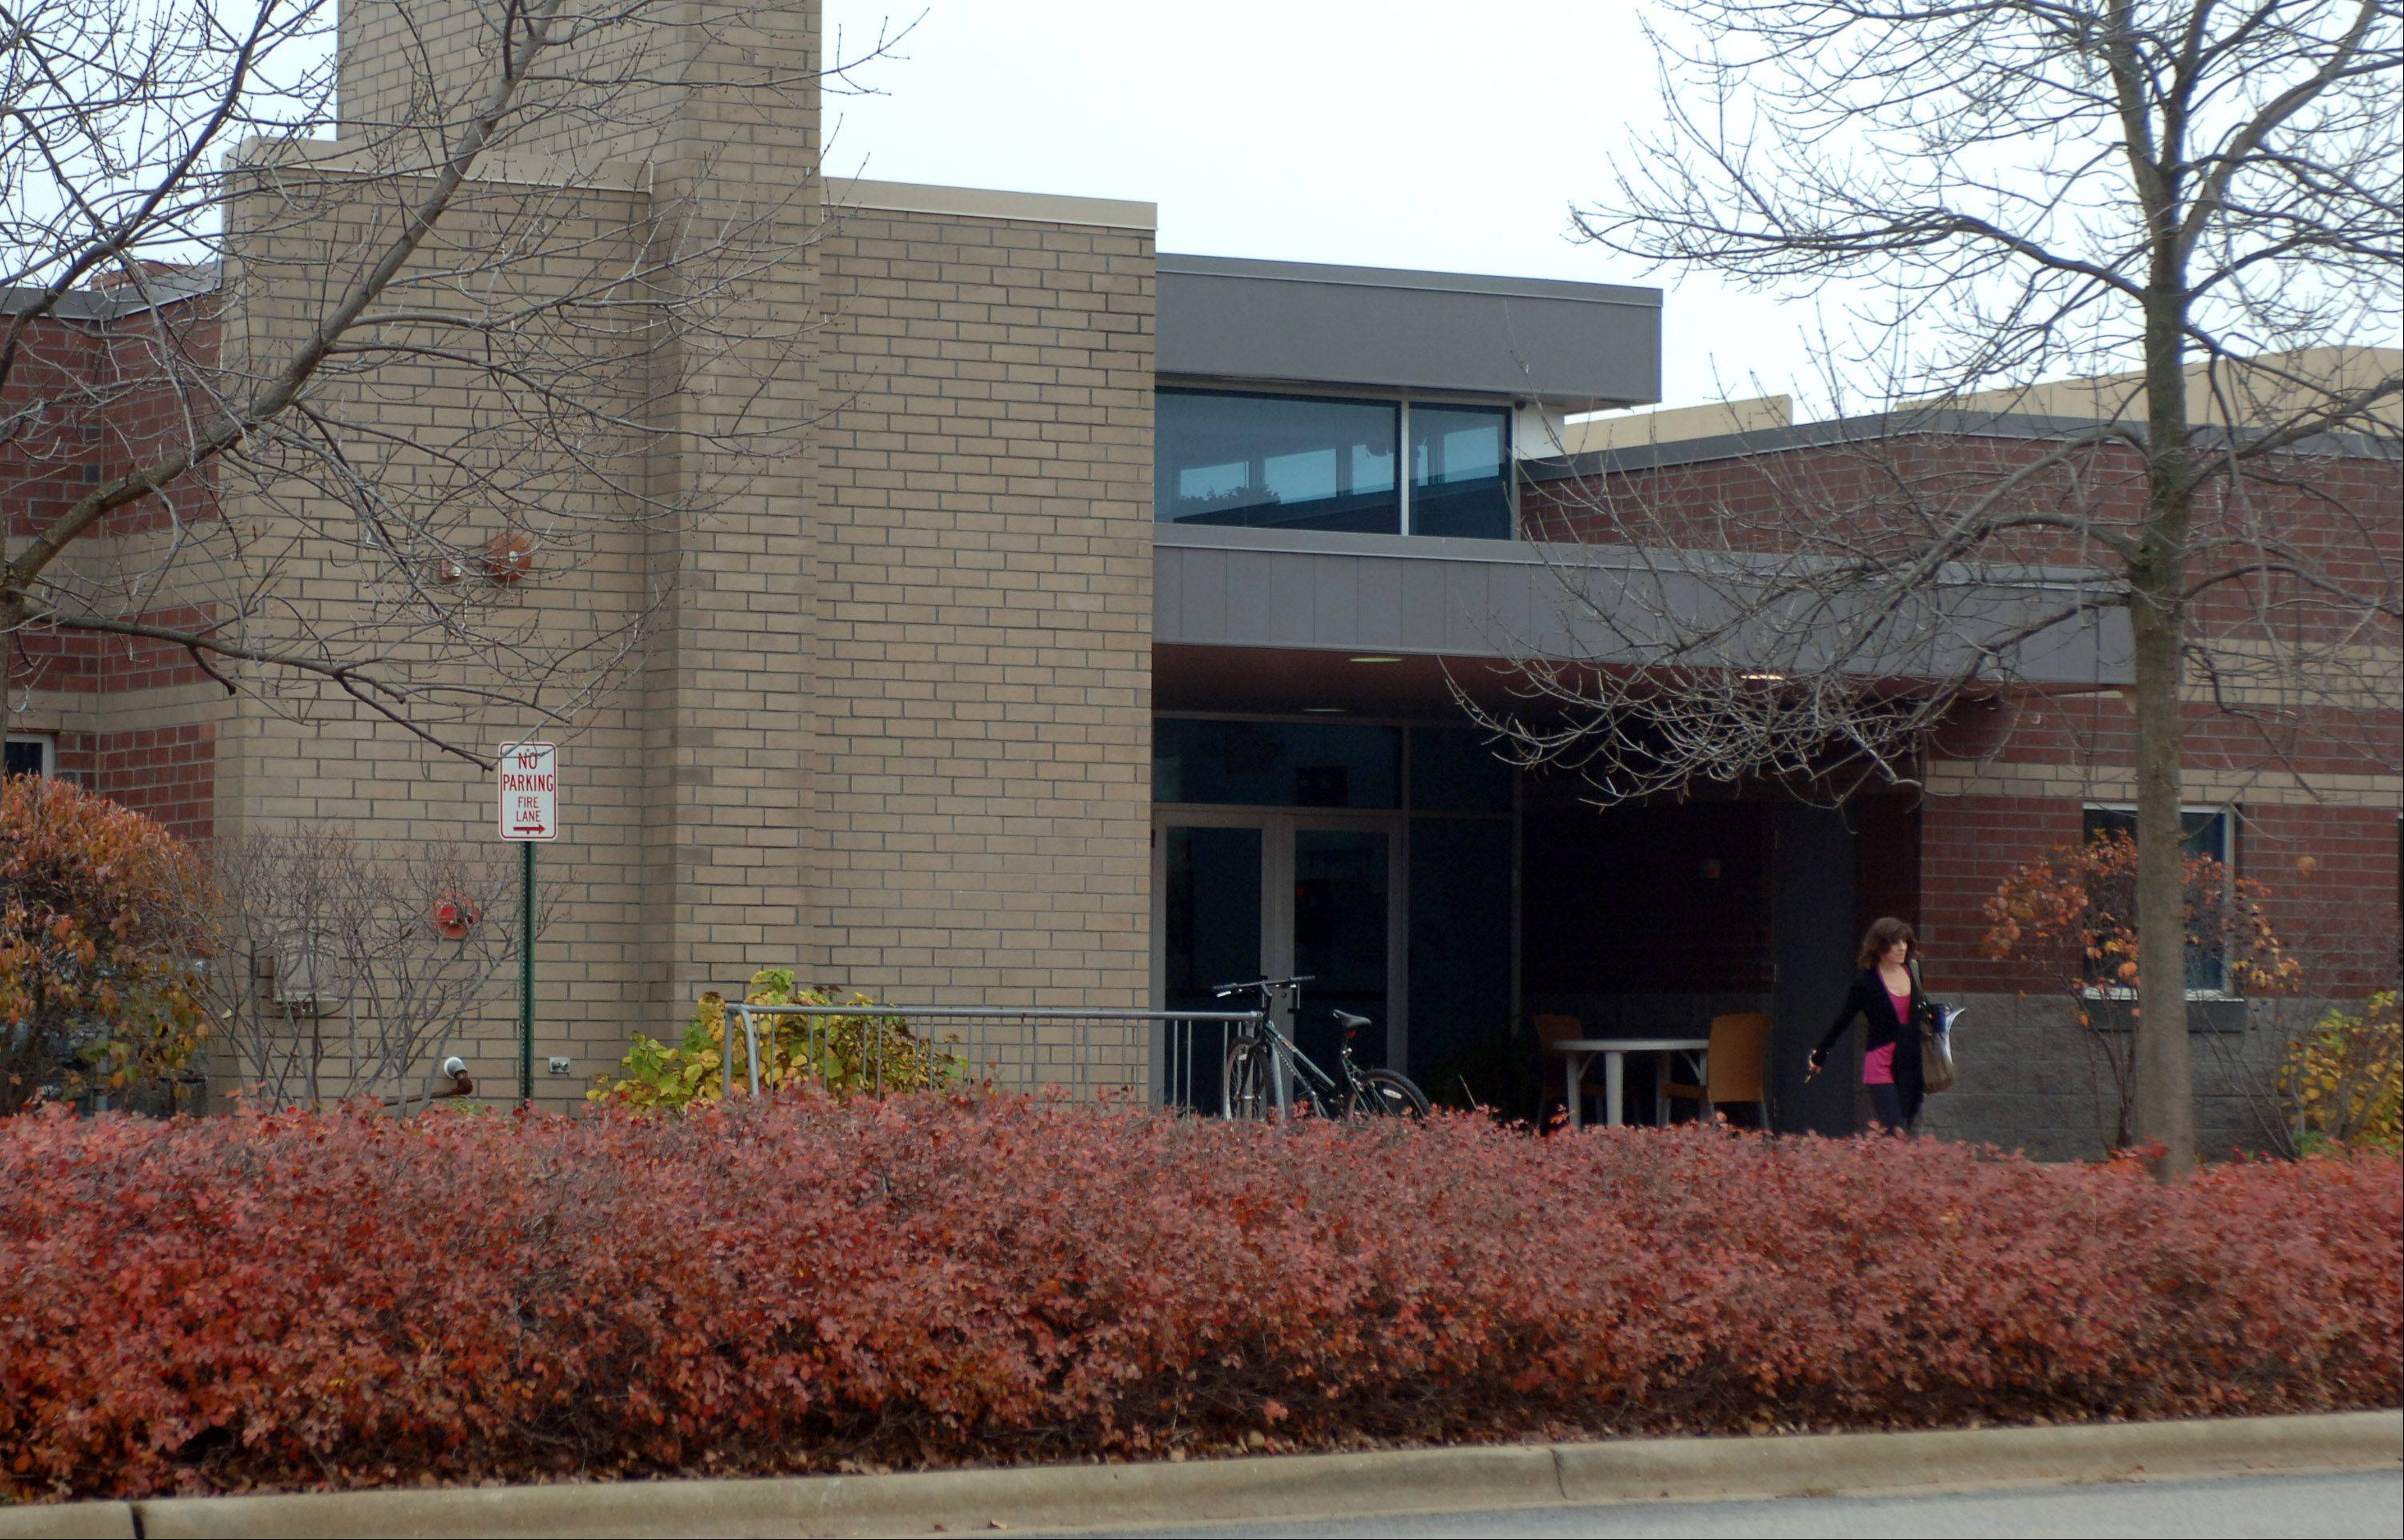 Village, park district offer $1.4 million as fast track solution to keep Vernon Hills YMCA open